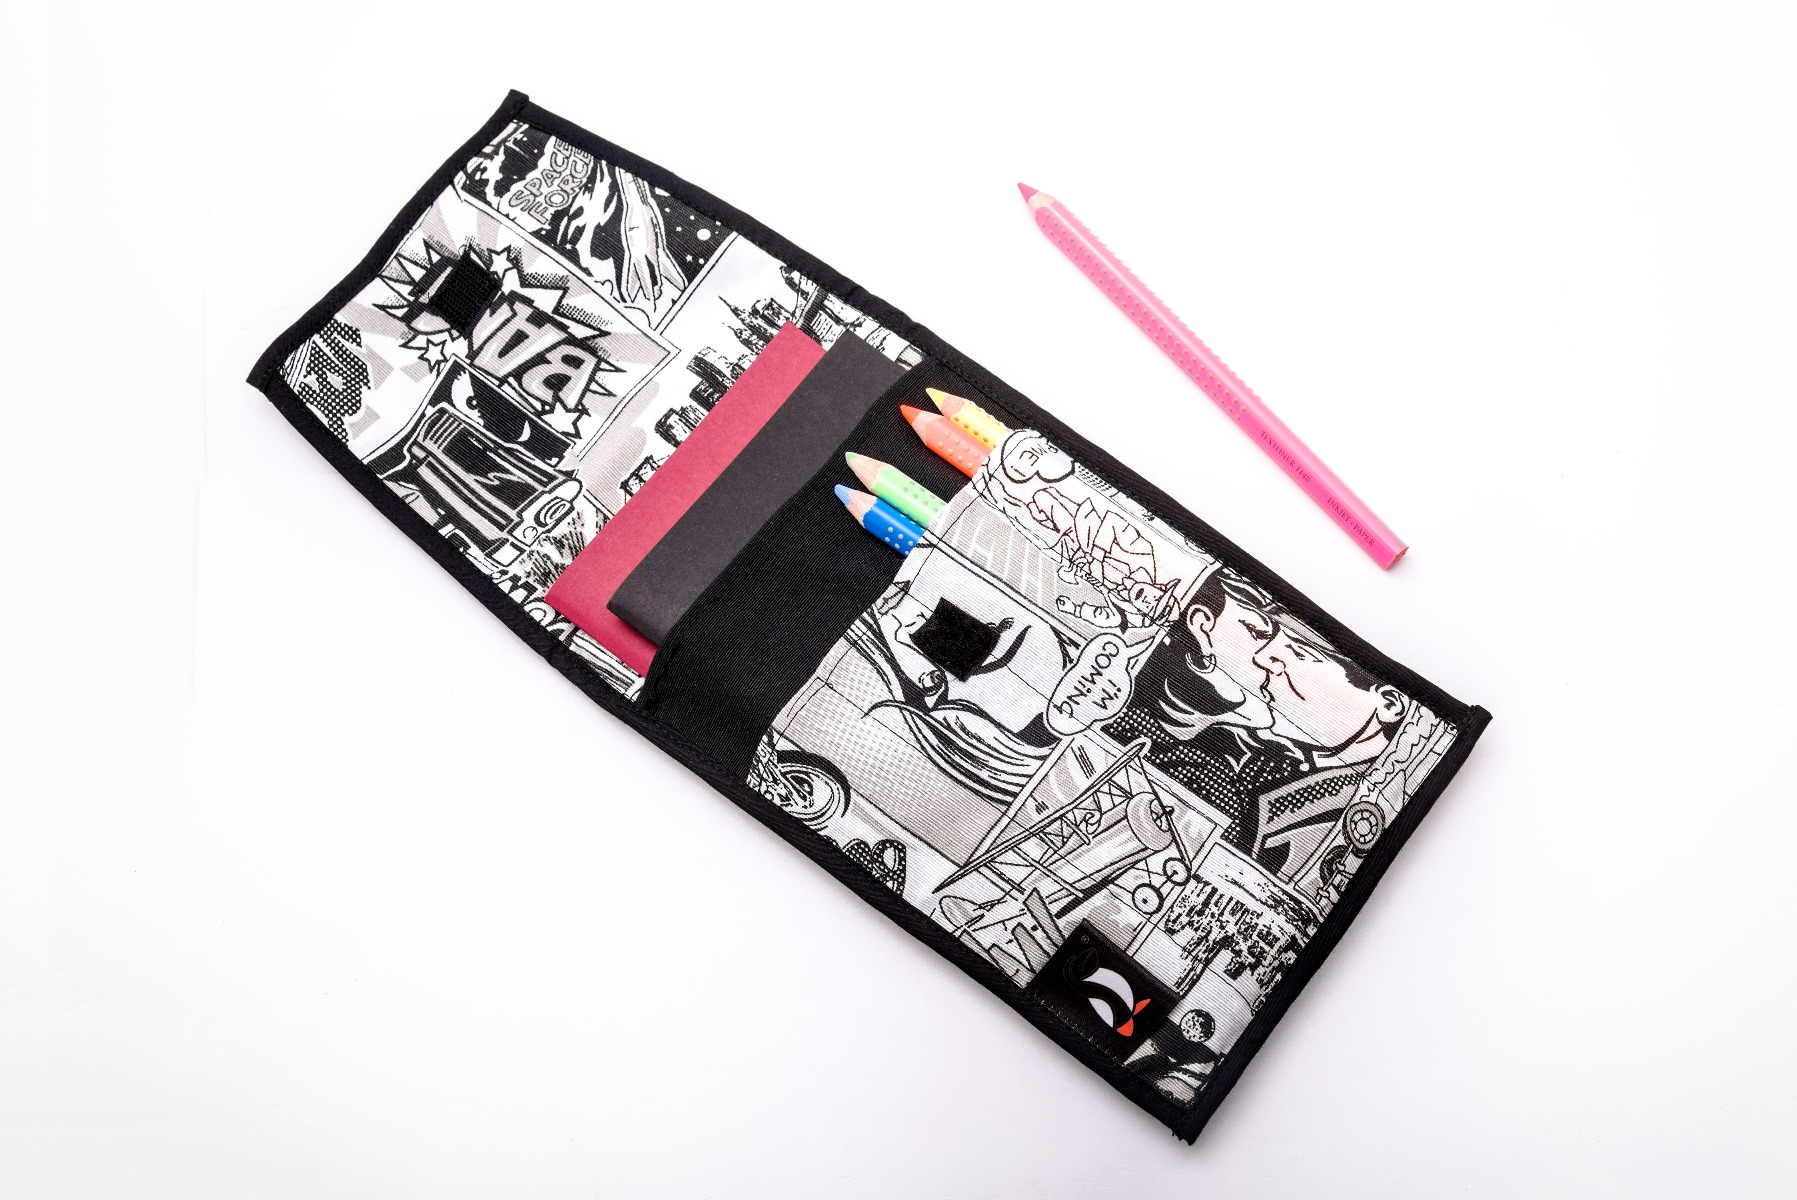 Case For Notebooks And Writing Accessories - Comic